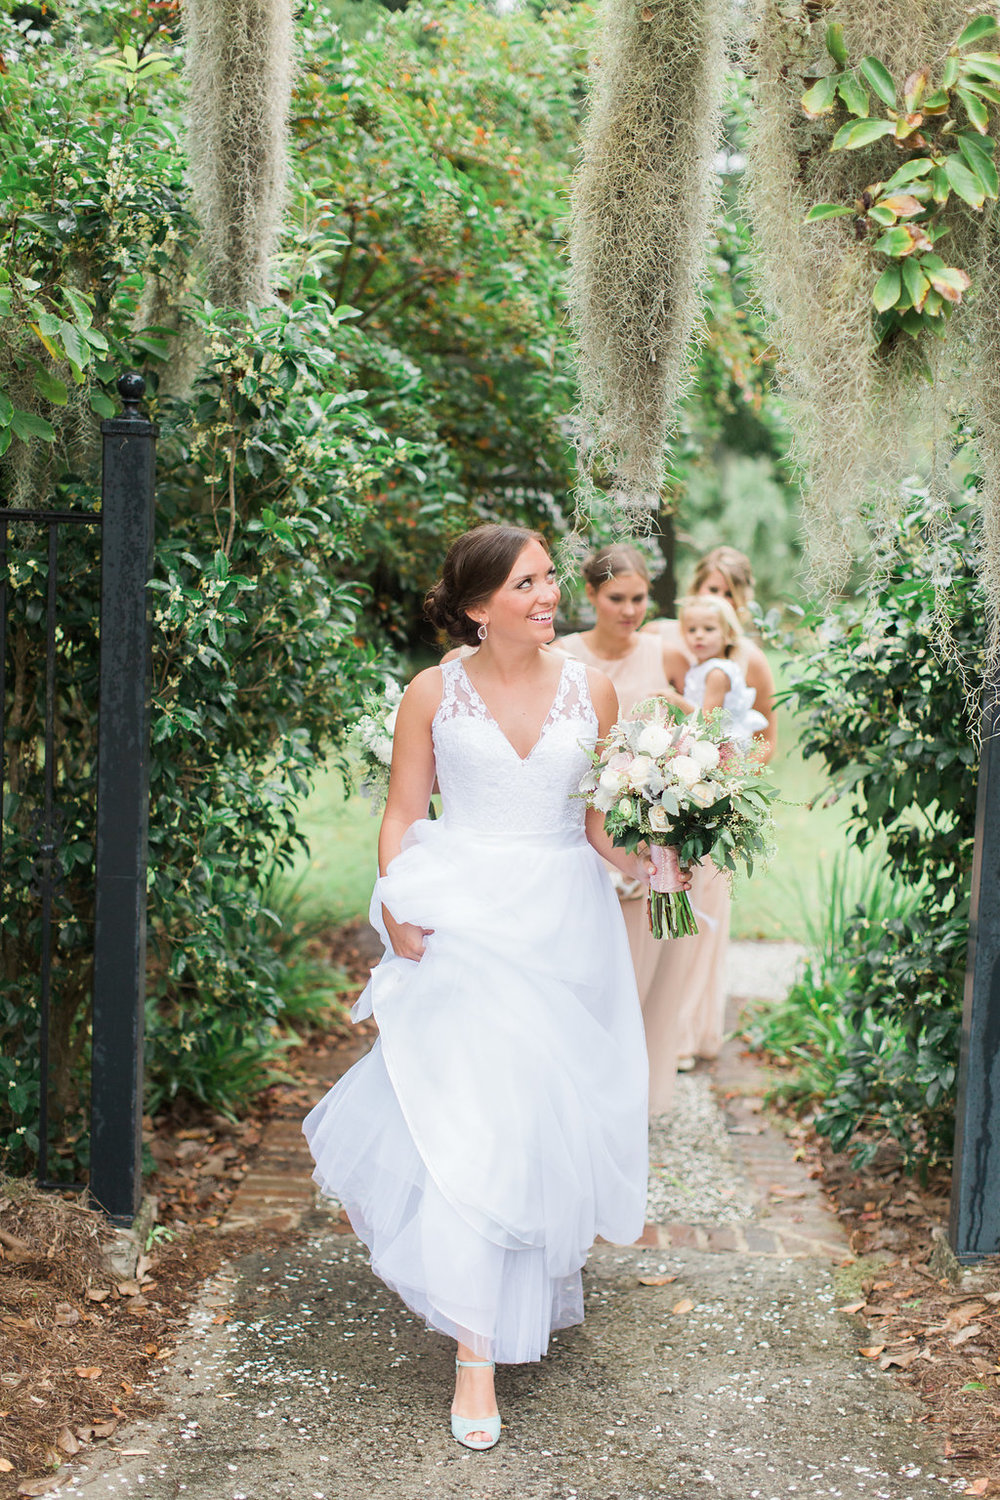 the-happy-bloom-photography-ivory-and-beau-wedding-planning-ivory-and-beau-bridal-boutique-whitfield-chapel-wedding-10-downing-wedding-savannah-wedding-historic-savannah-wedding-savannah-wedding-planner-savannah-weddings-a-to-zinnias-8.jpg